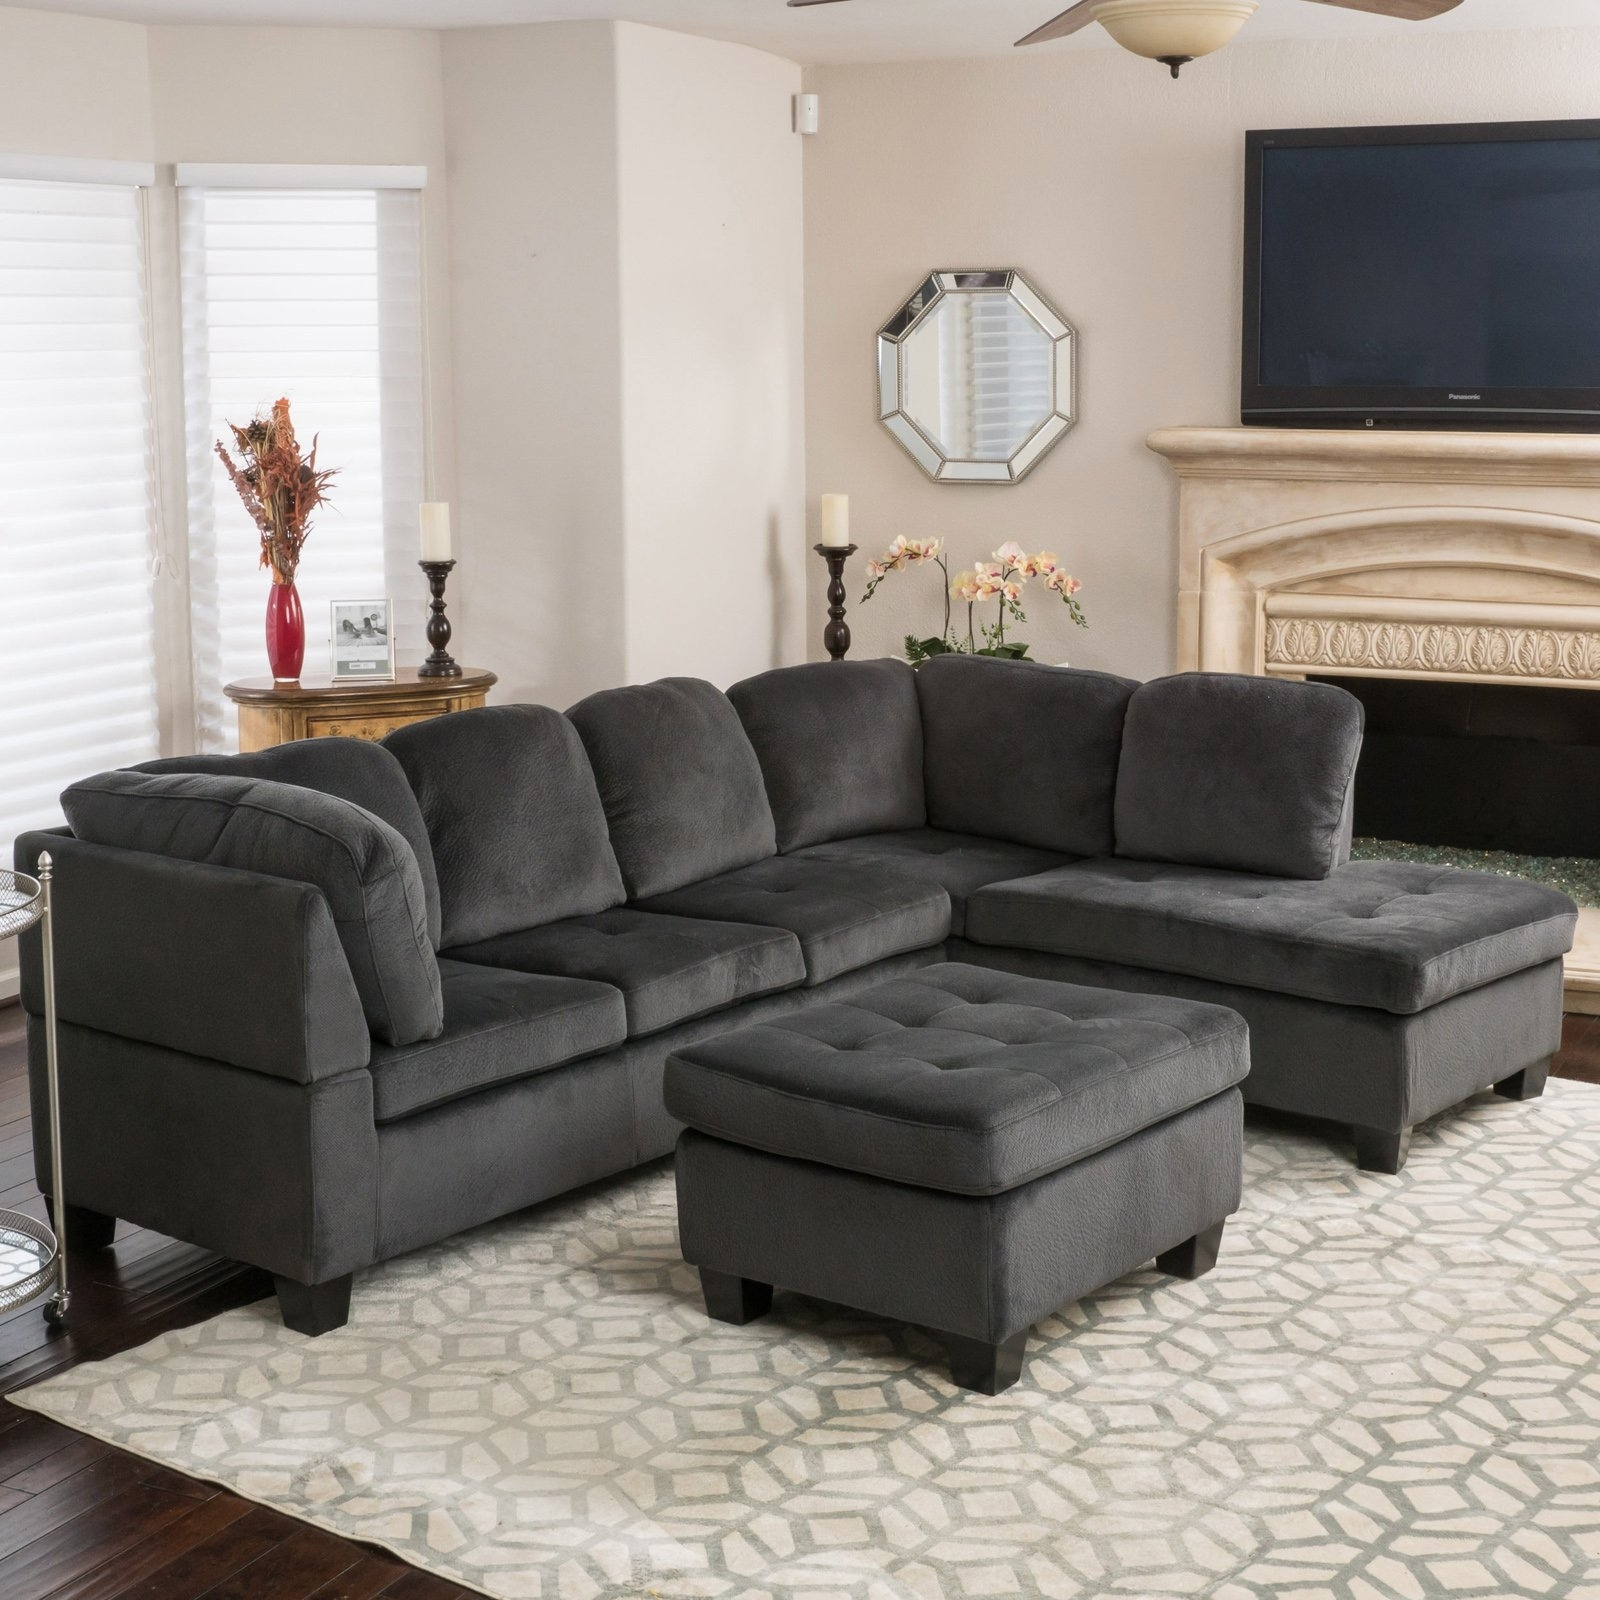 Evan 3 Piece Sectional Sofa | Hayneedle Inside Evan 2 Piece Sectionals With Raf Chaise (Image 16 of 25)